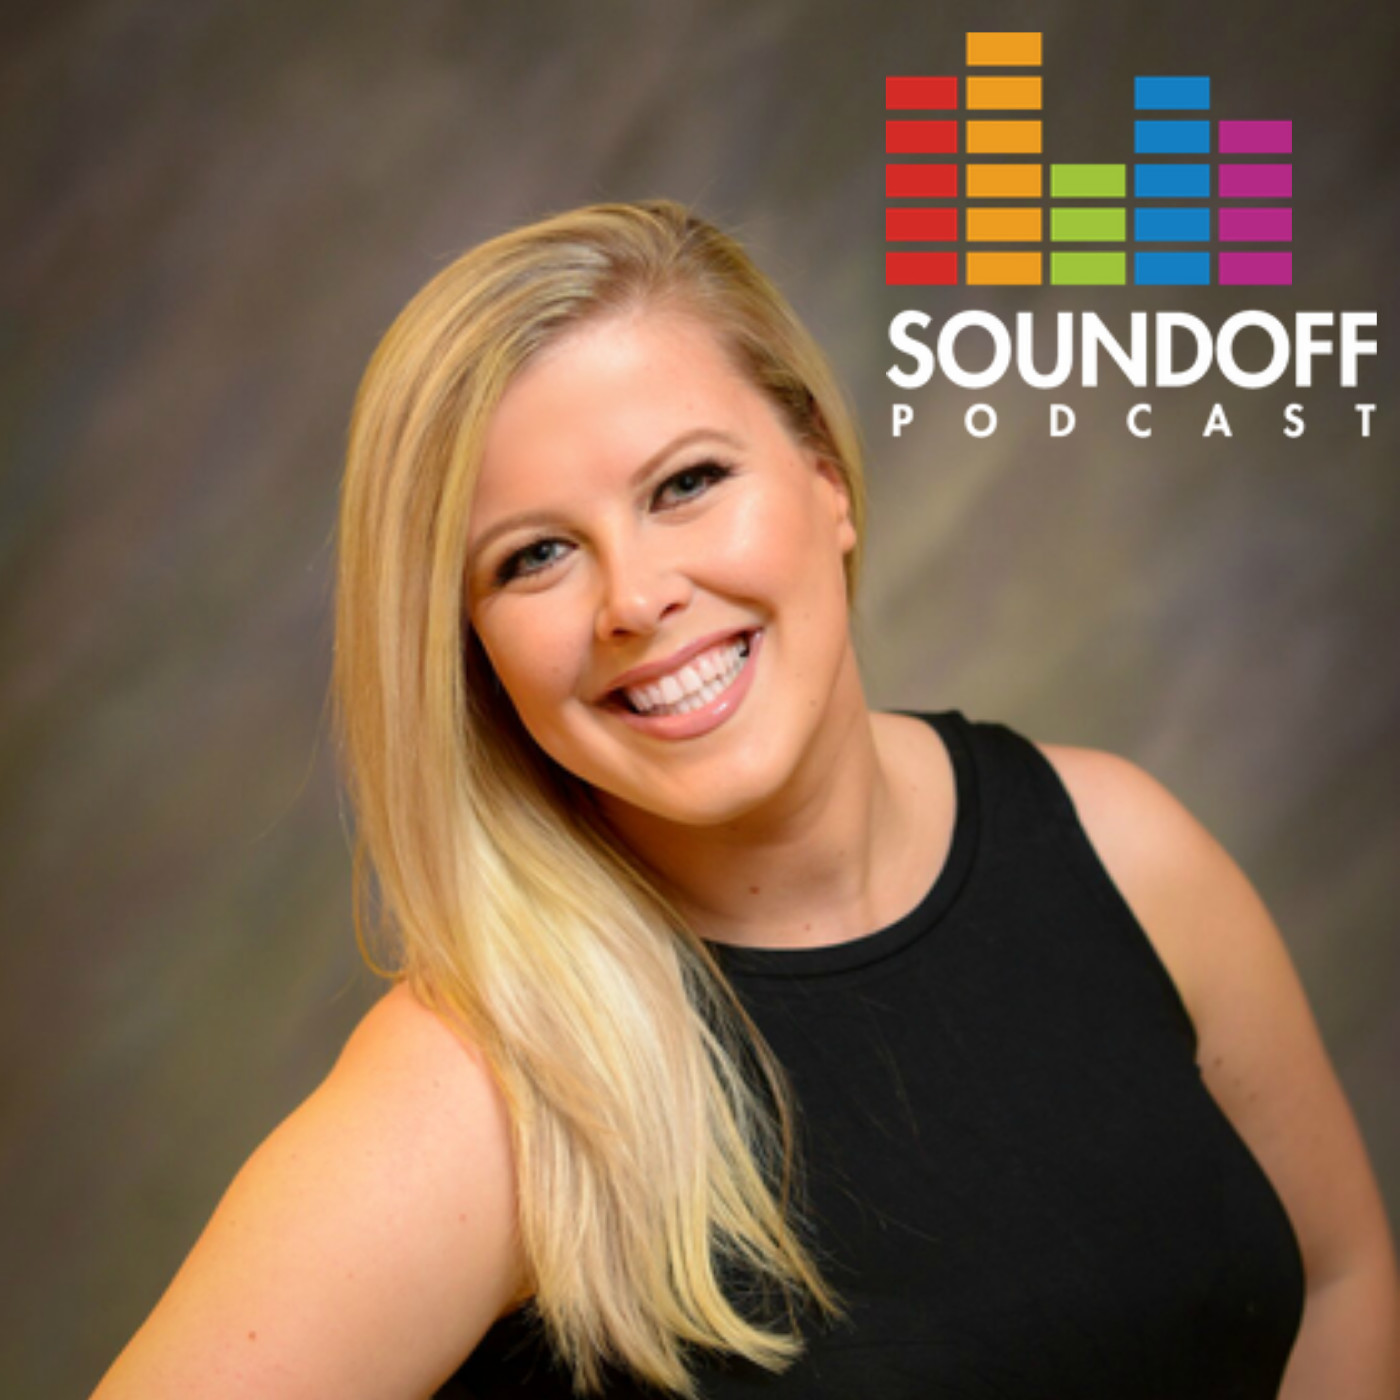 Episode 123 - Amanda Logan from A to Z103.5